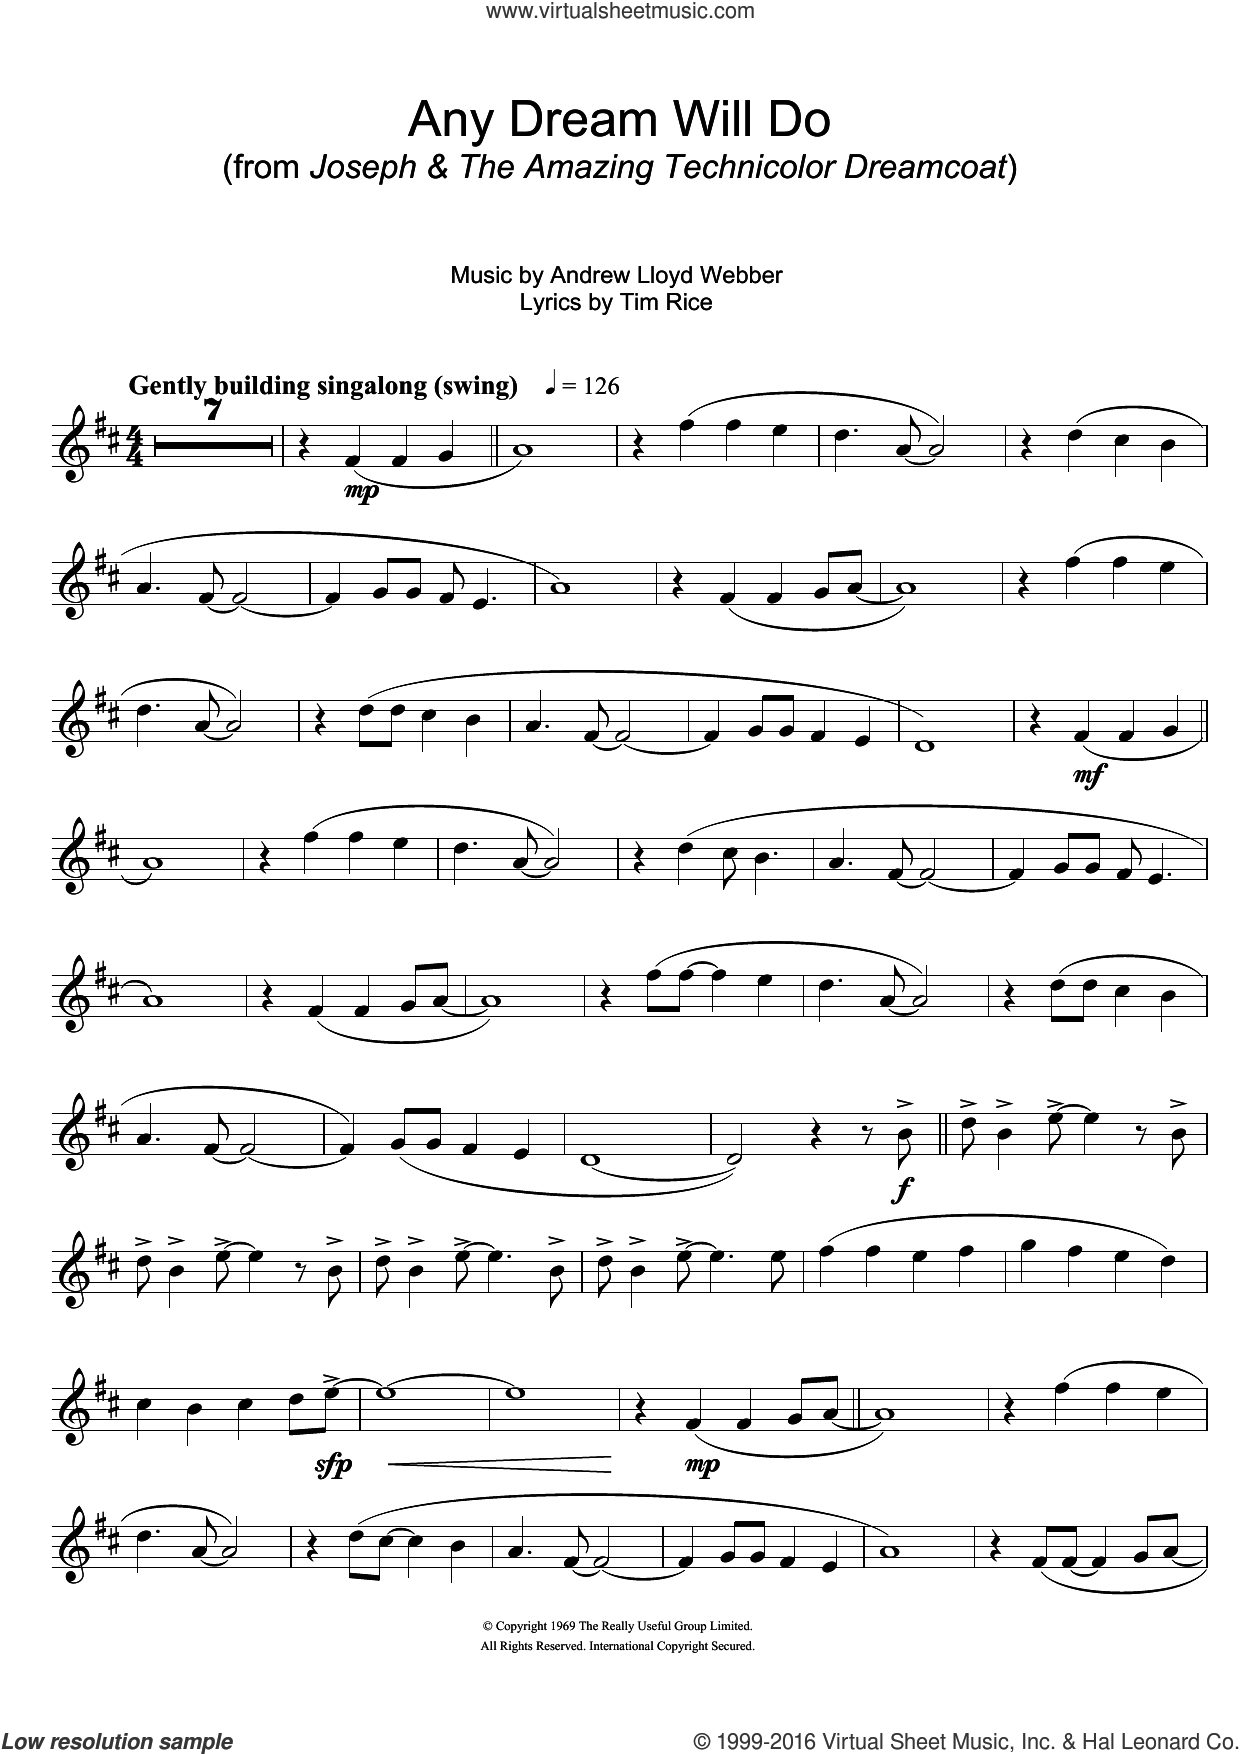 Any Dream Will Do (from Joseph And The Amazing Technicolor Dreamcoat) sheet music for trumpet solo by Tim Rice and Andrew Lloyd Webber. Score Image Preview.